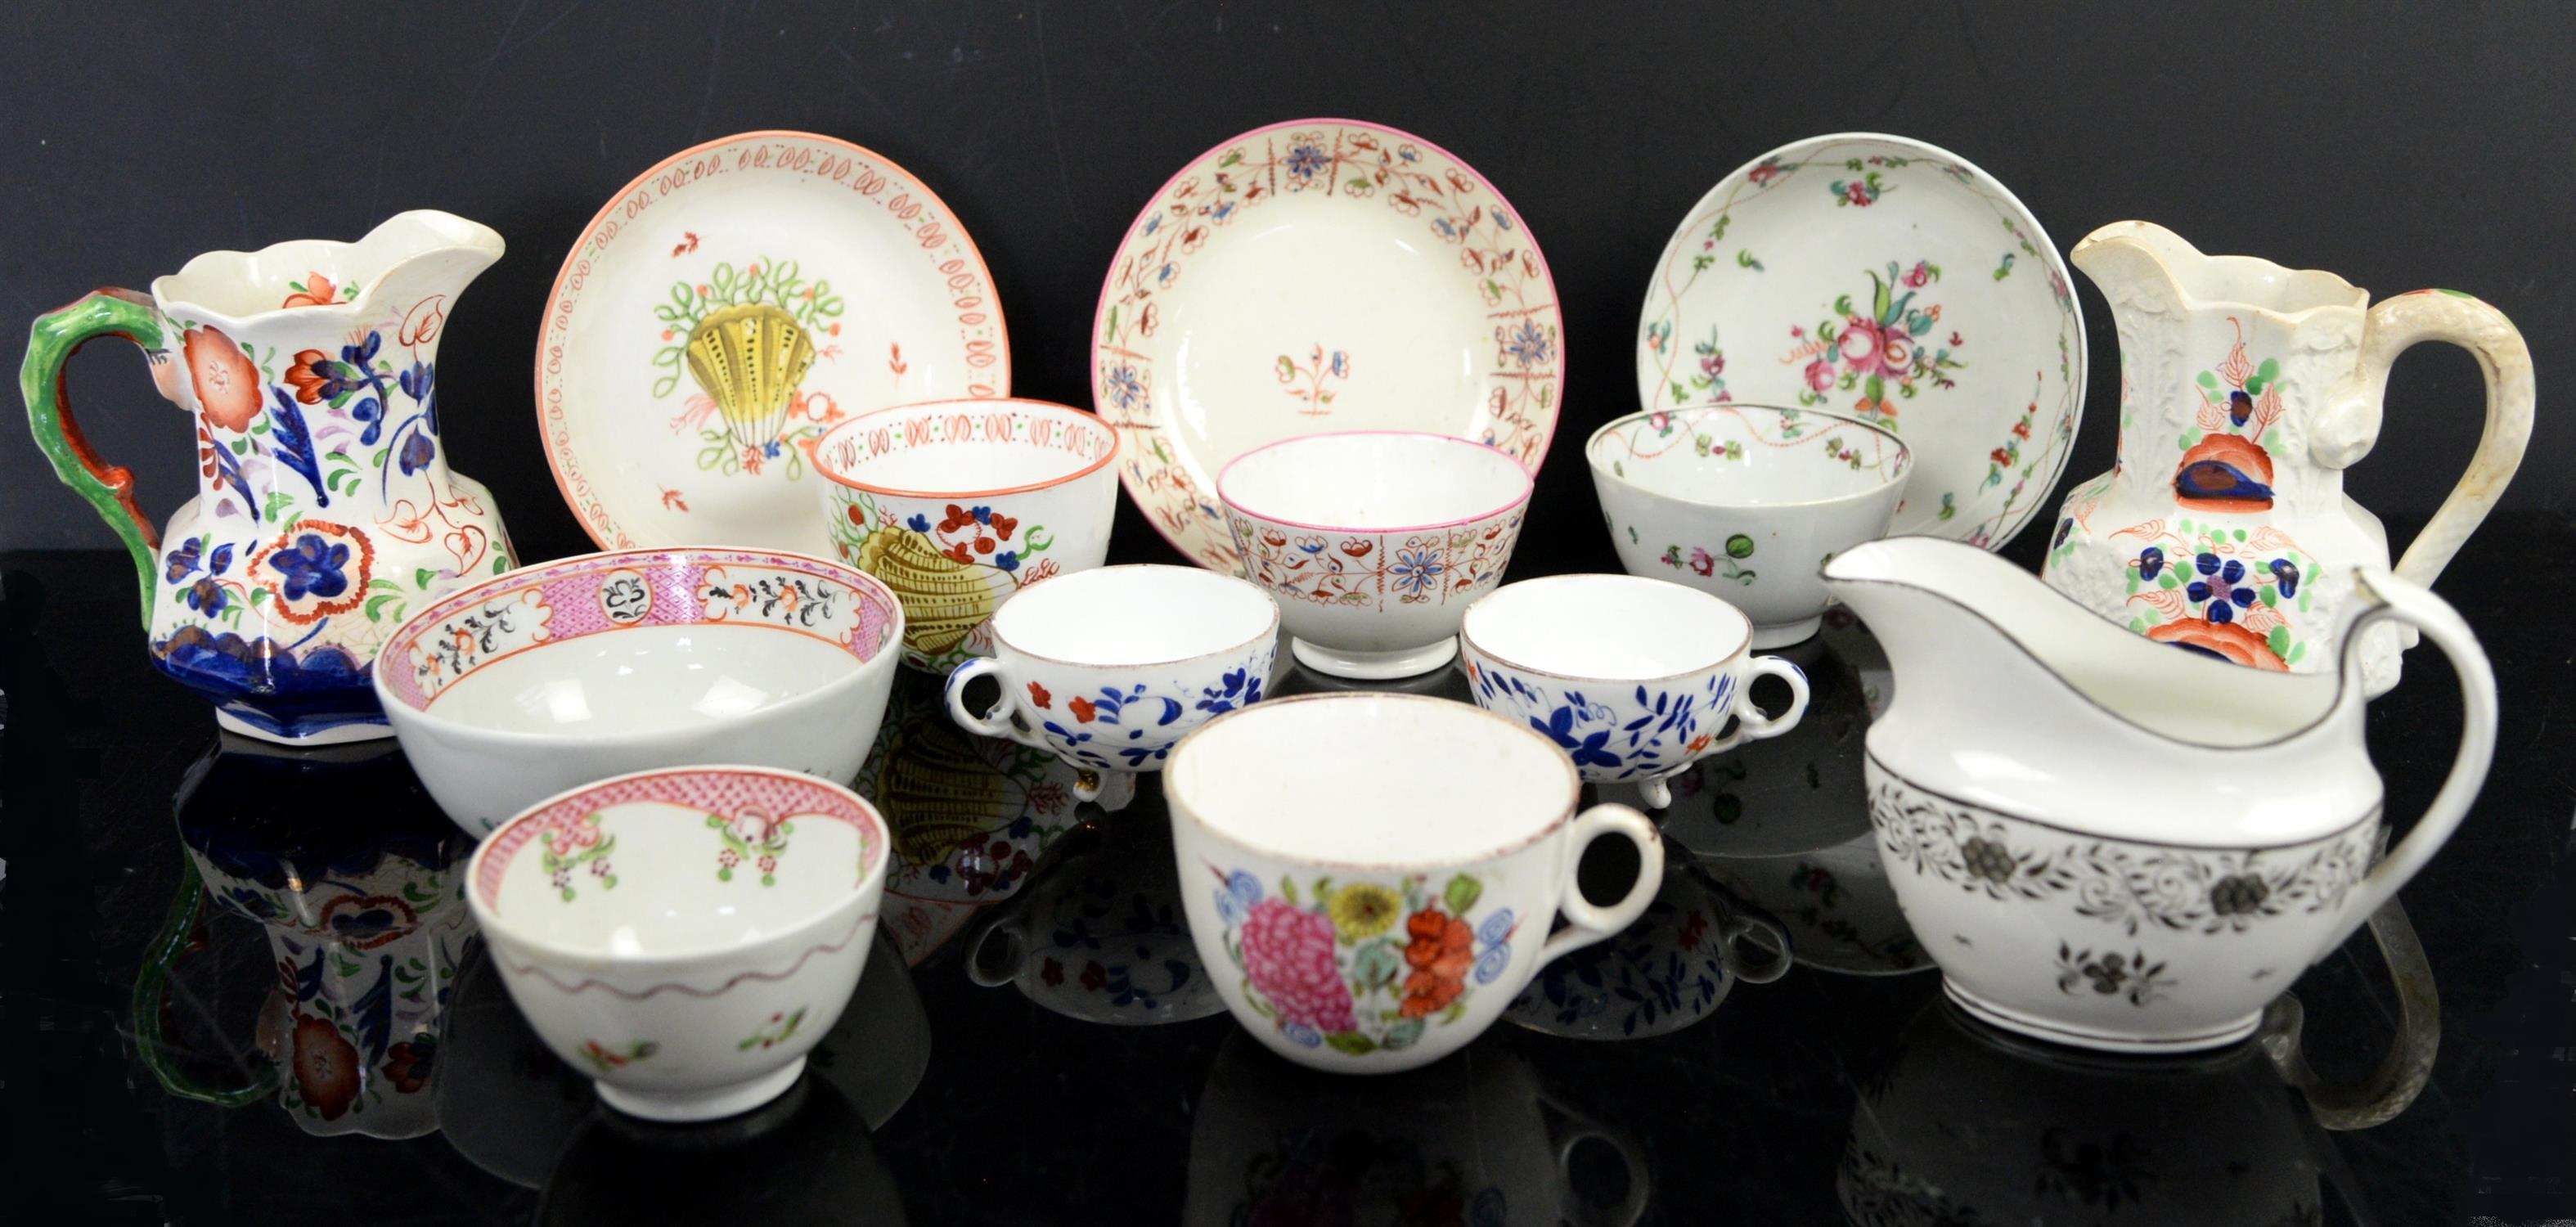 18th century and later porcelain, three tea bowls and saucers, including New Hall decorated with